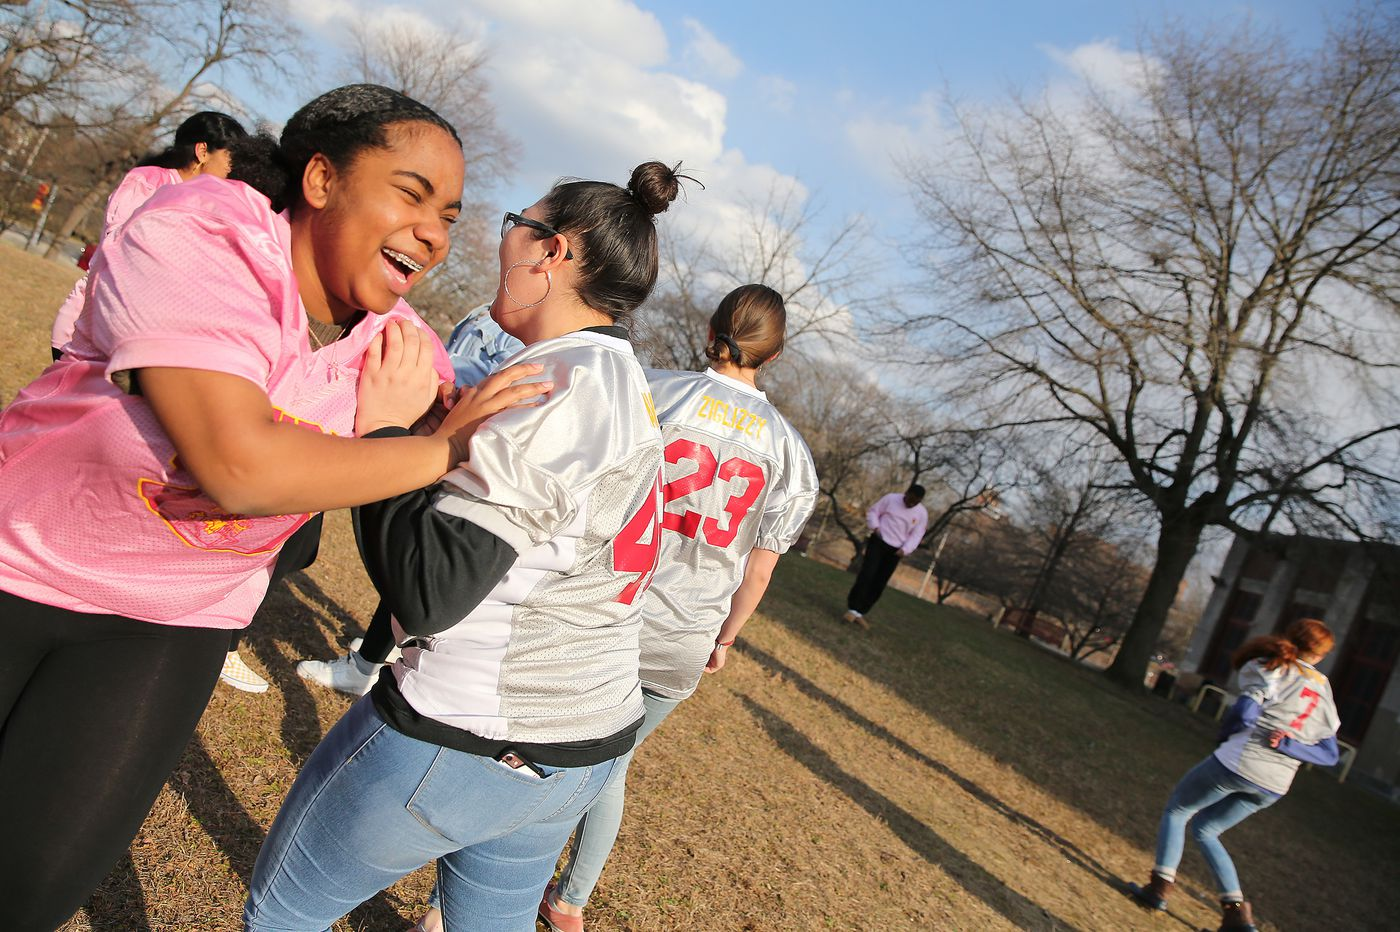 There's a new kind of Thanksgiving Day rivalry for two Philly schools: powderpuff football